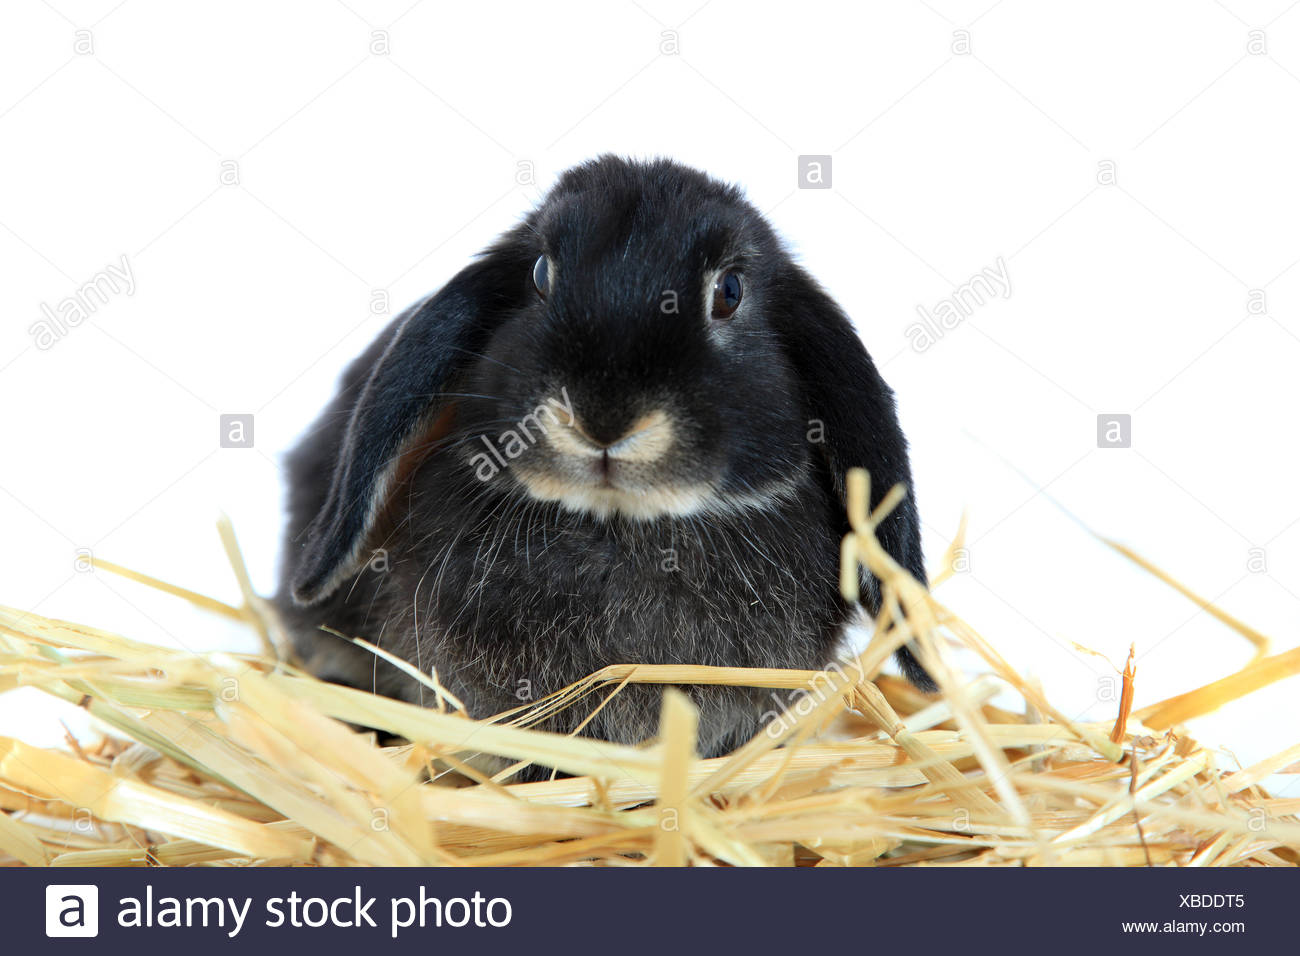 Black rabbit - Stock Image